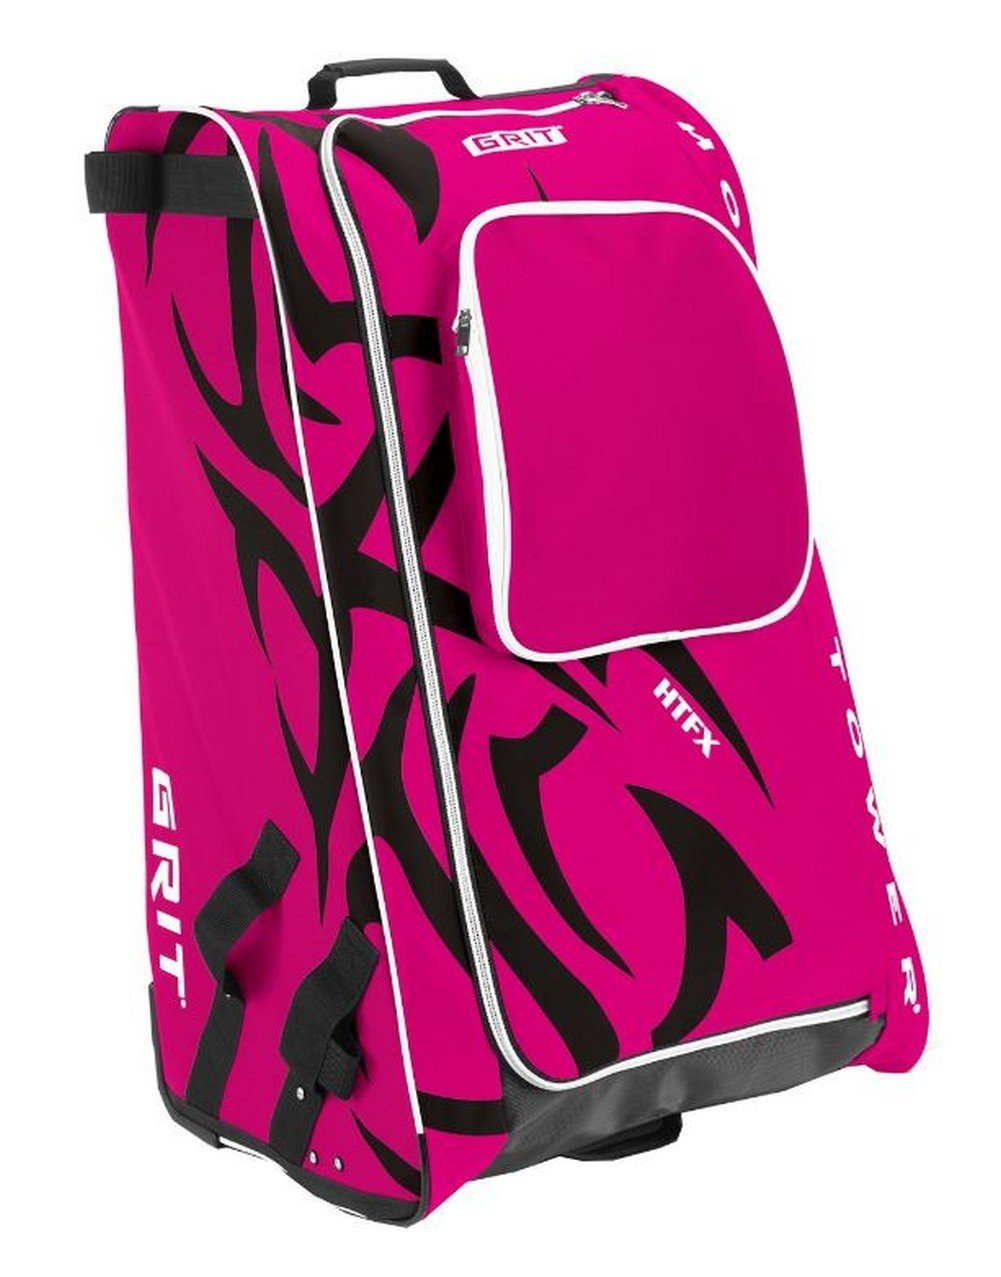 Grit Inc HTFX Hockey Tower 33'' Wheeled Equipment Bag Fuchsia HTFX033-DI (Diva)